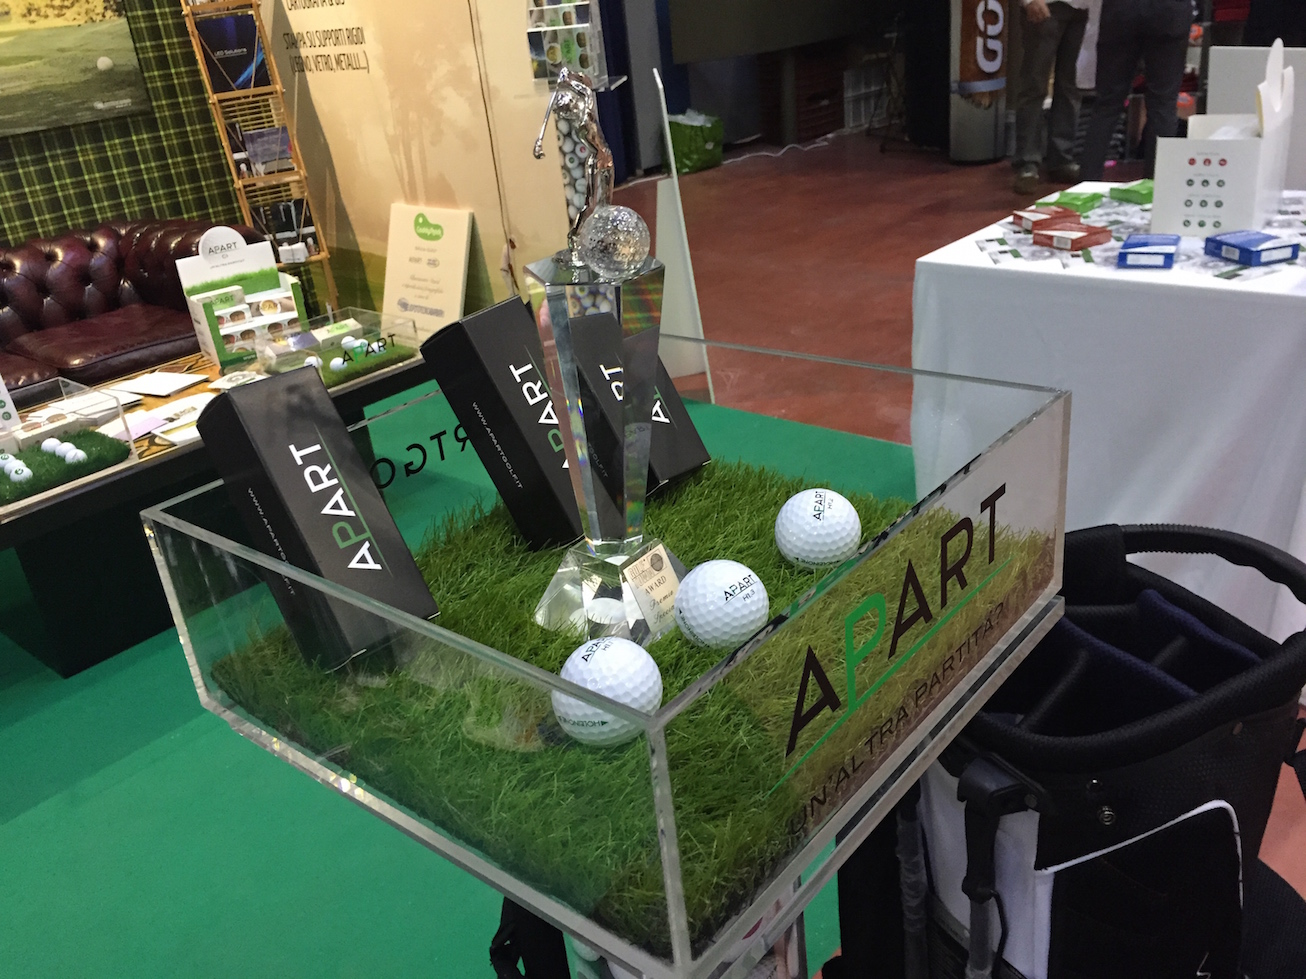 Fiera del Golf Parma 2015 le foto ed i video di Italian Golf Show e le prove dei materiali09 - Fiera del Golf Parma: le foto ed i video di Italian Golf Show